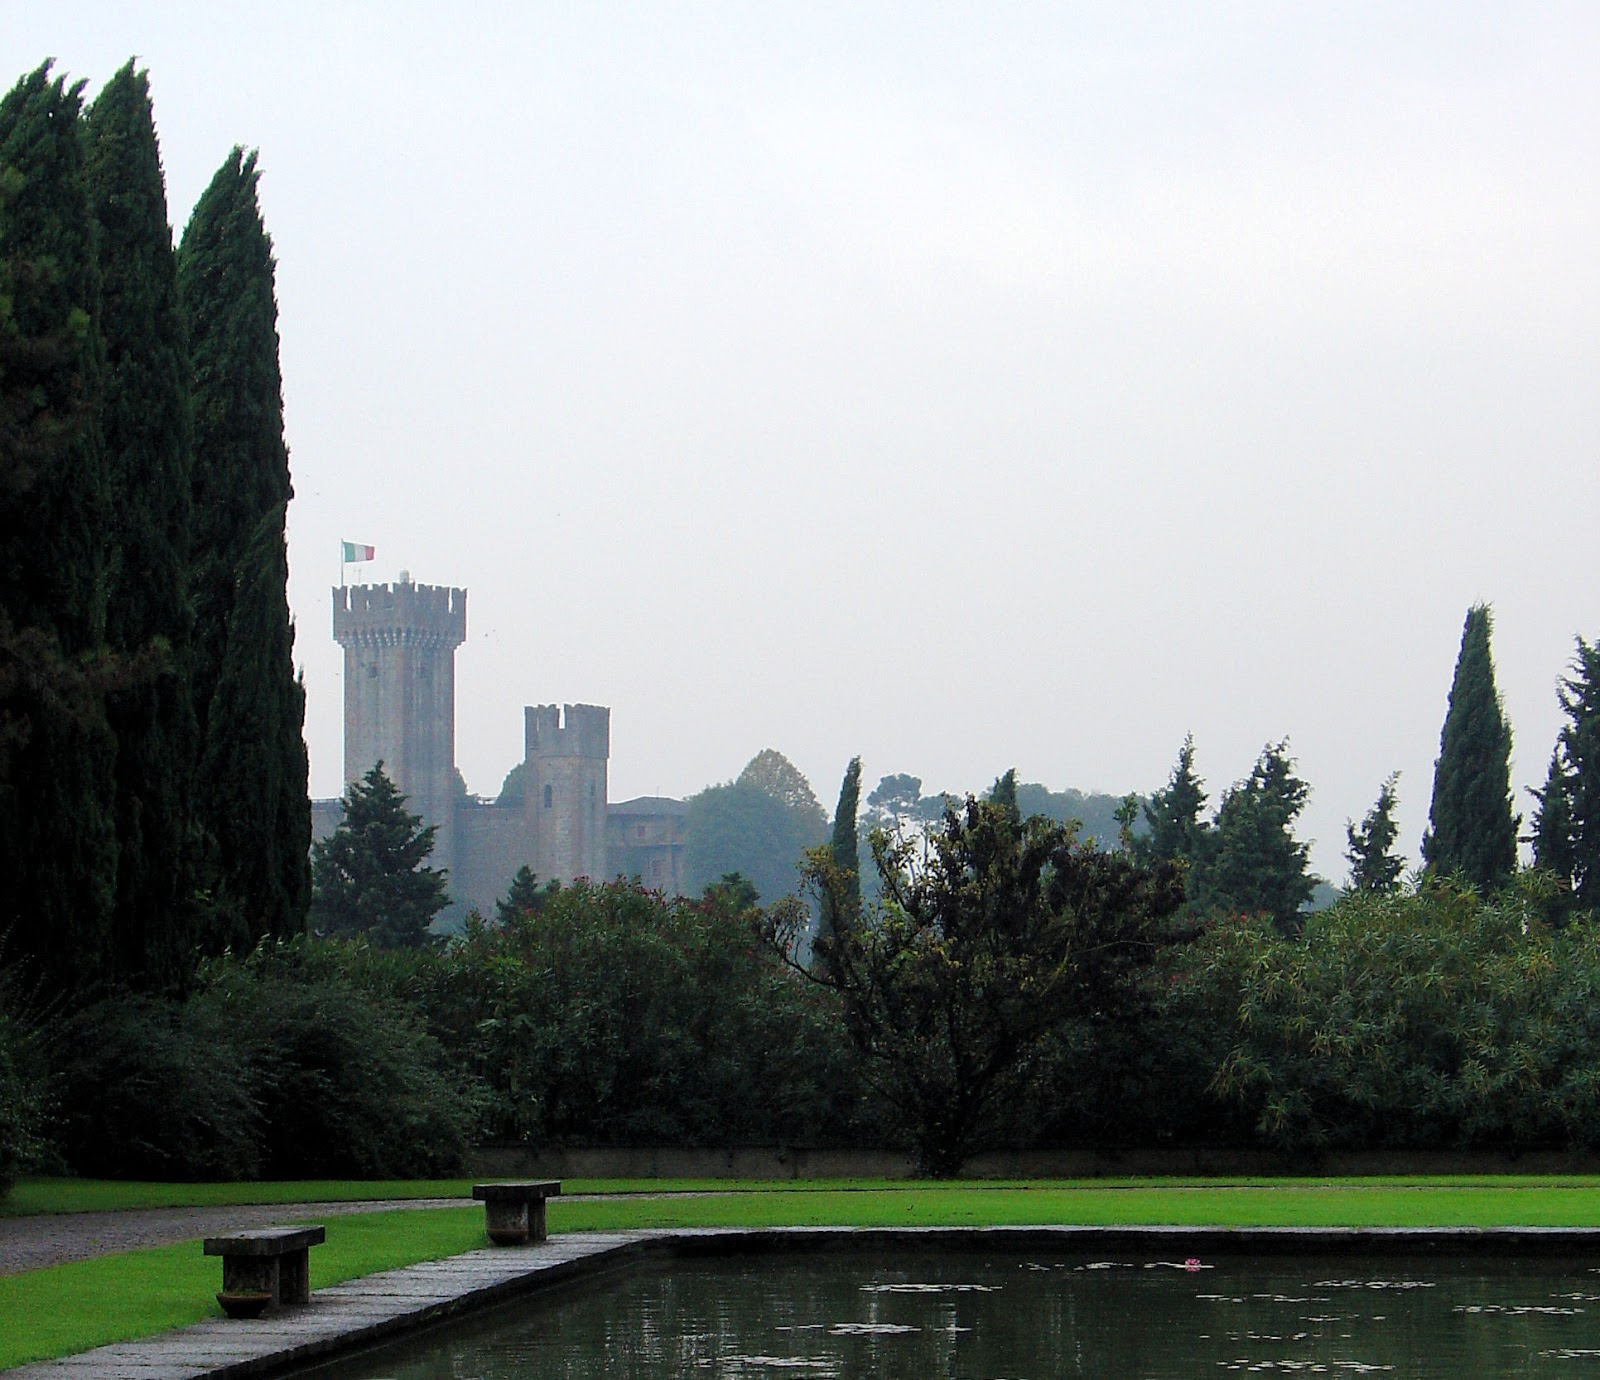 The Scaligero Castle aka The Fortress looms over the Parco Sigurtà and Borghetto beyond the ridge.